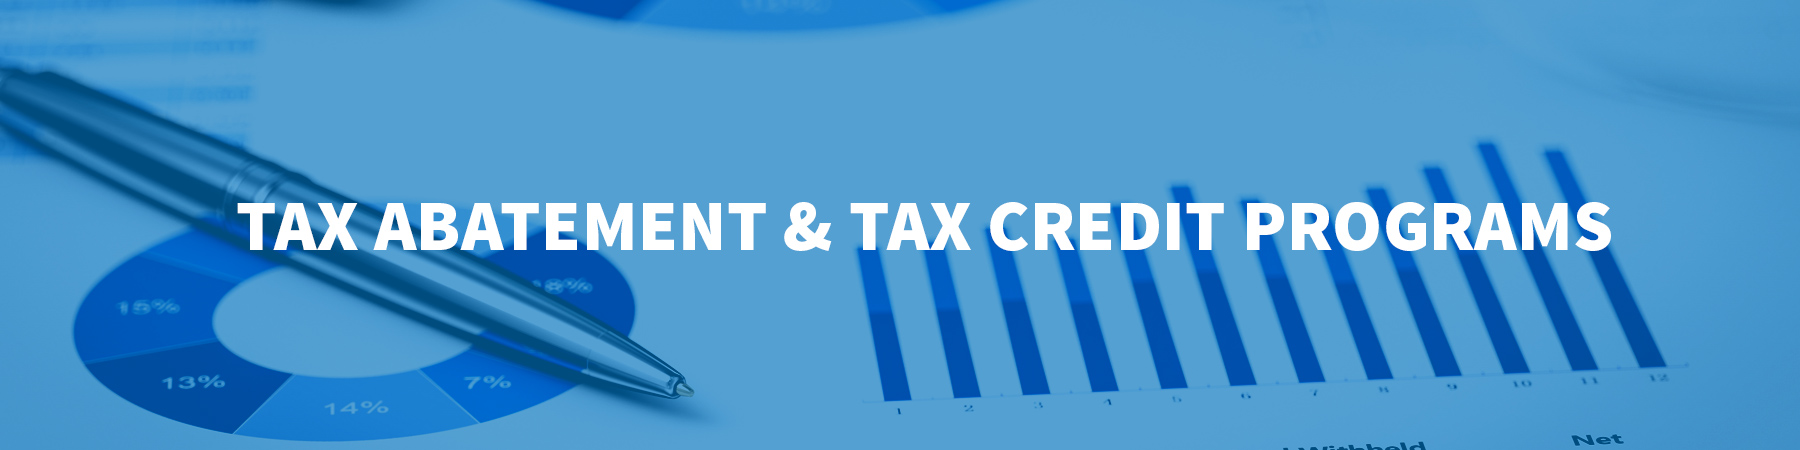 tax-abatement-and-tax-credit-programs